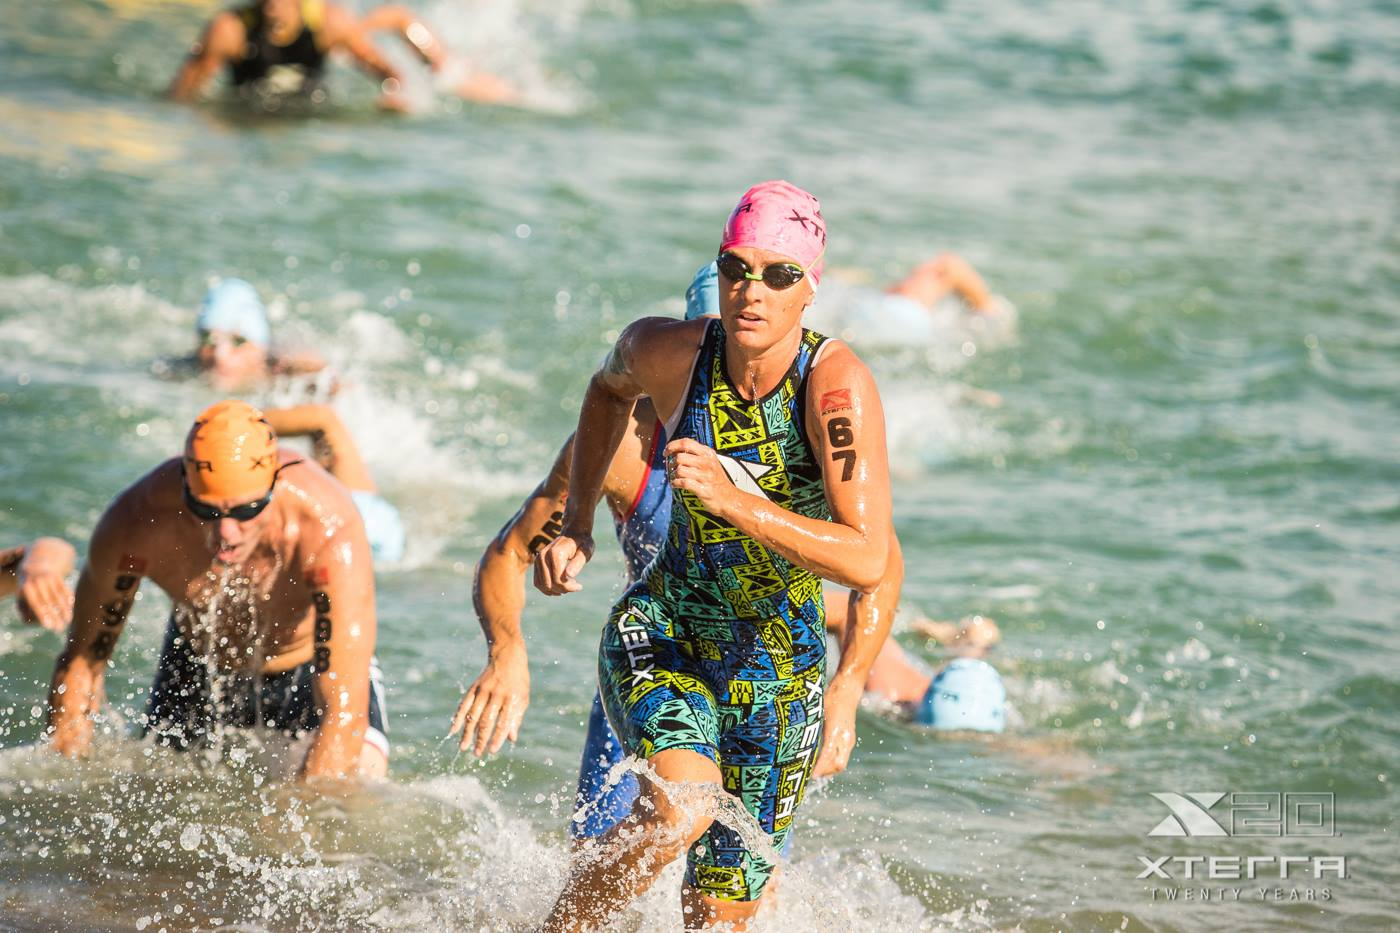 XTERRA_WORLD_CHAMPIONSHIP_2015_00018